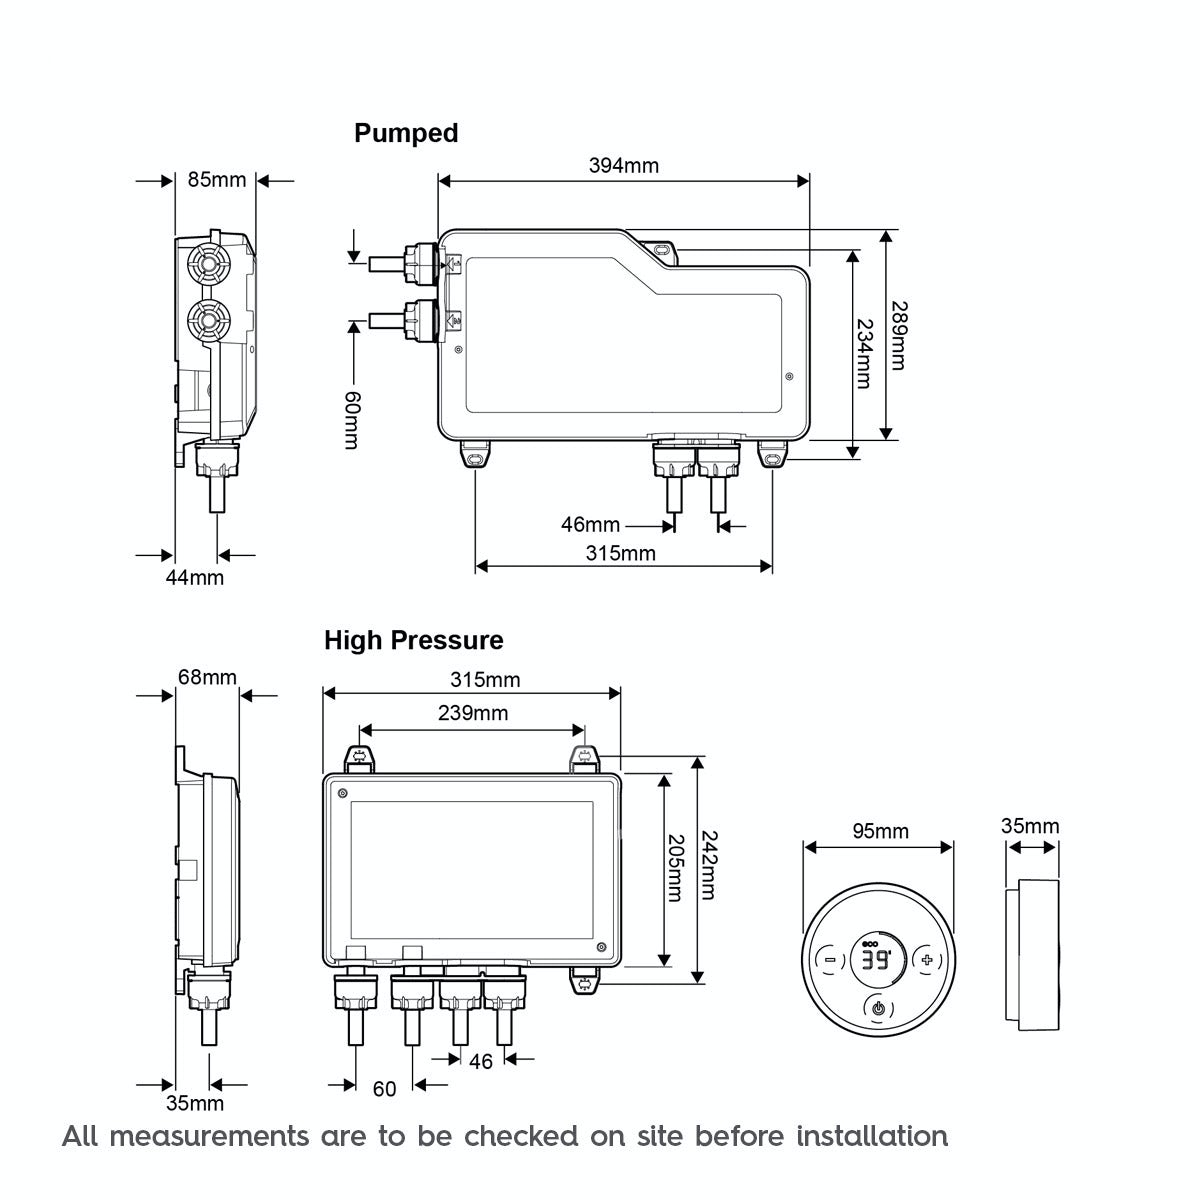 Dimensions for Mira Platinum digital shower valve and controller standard